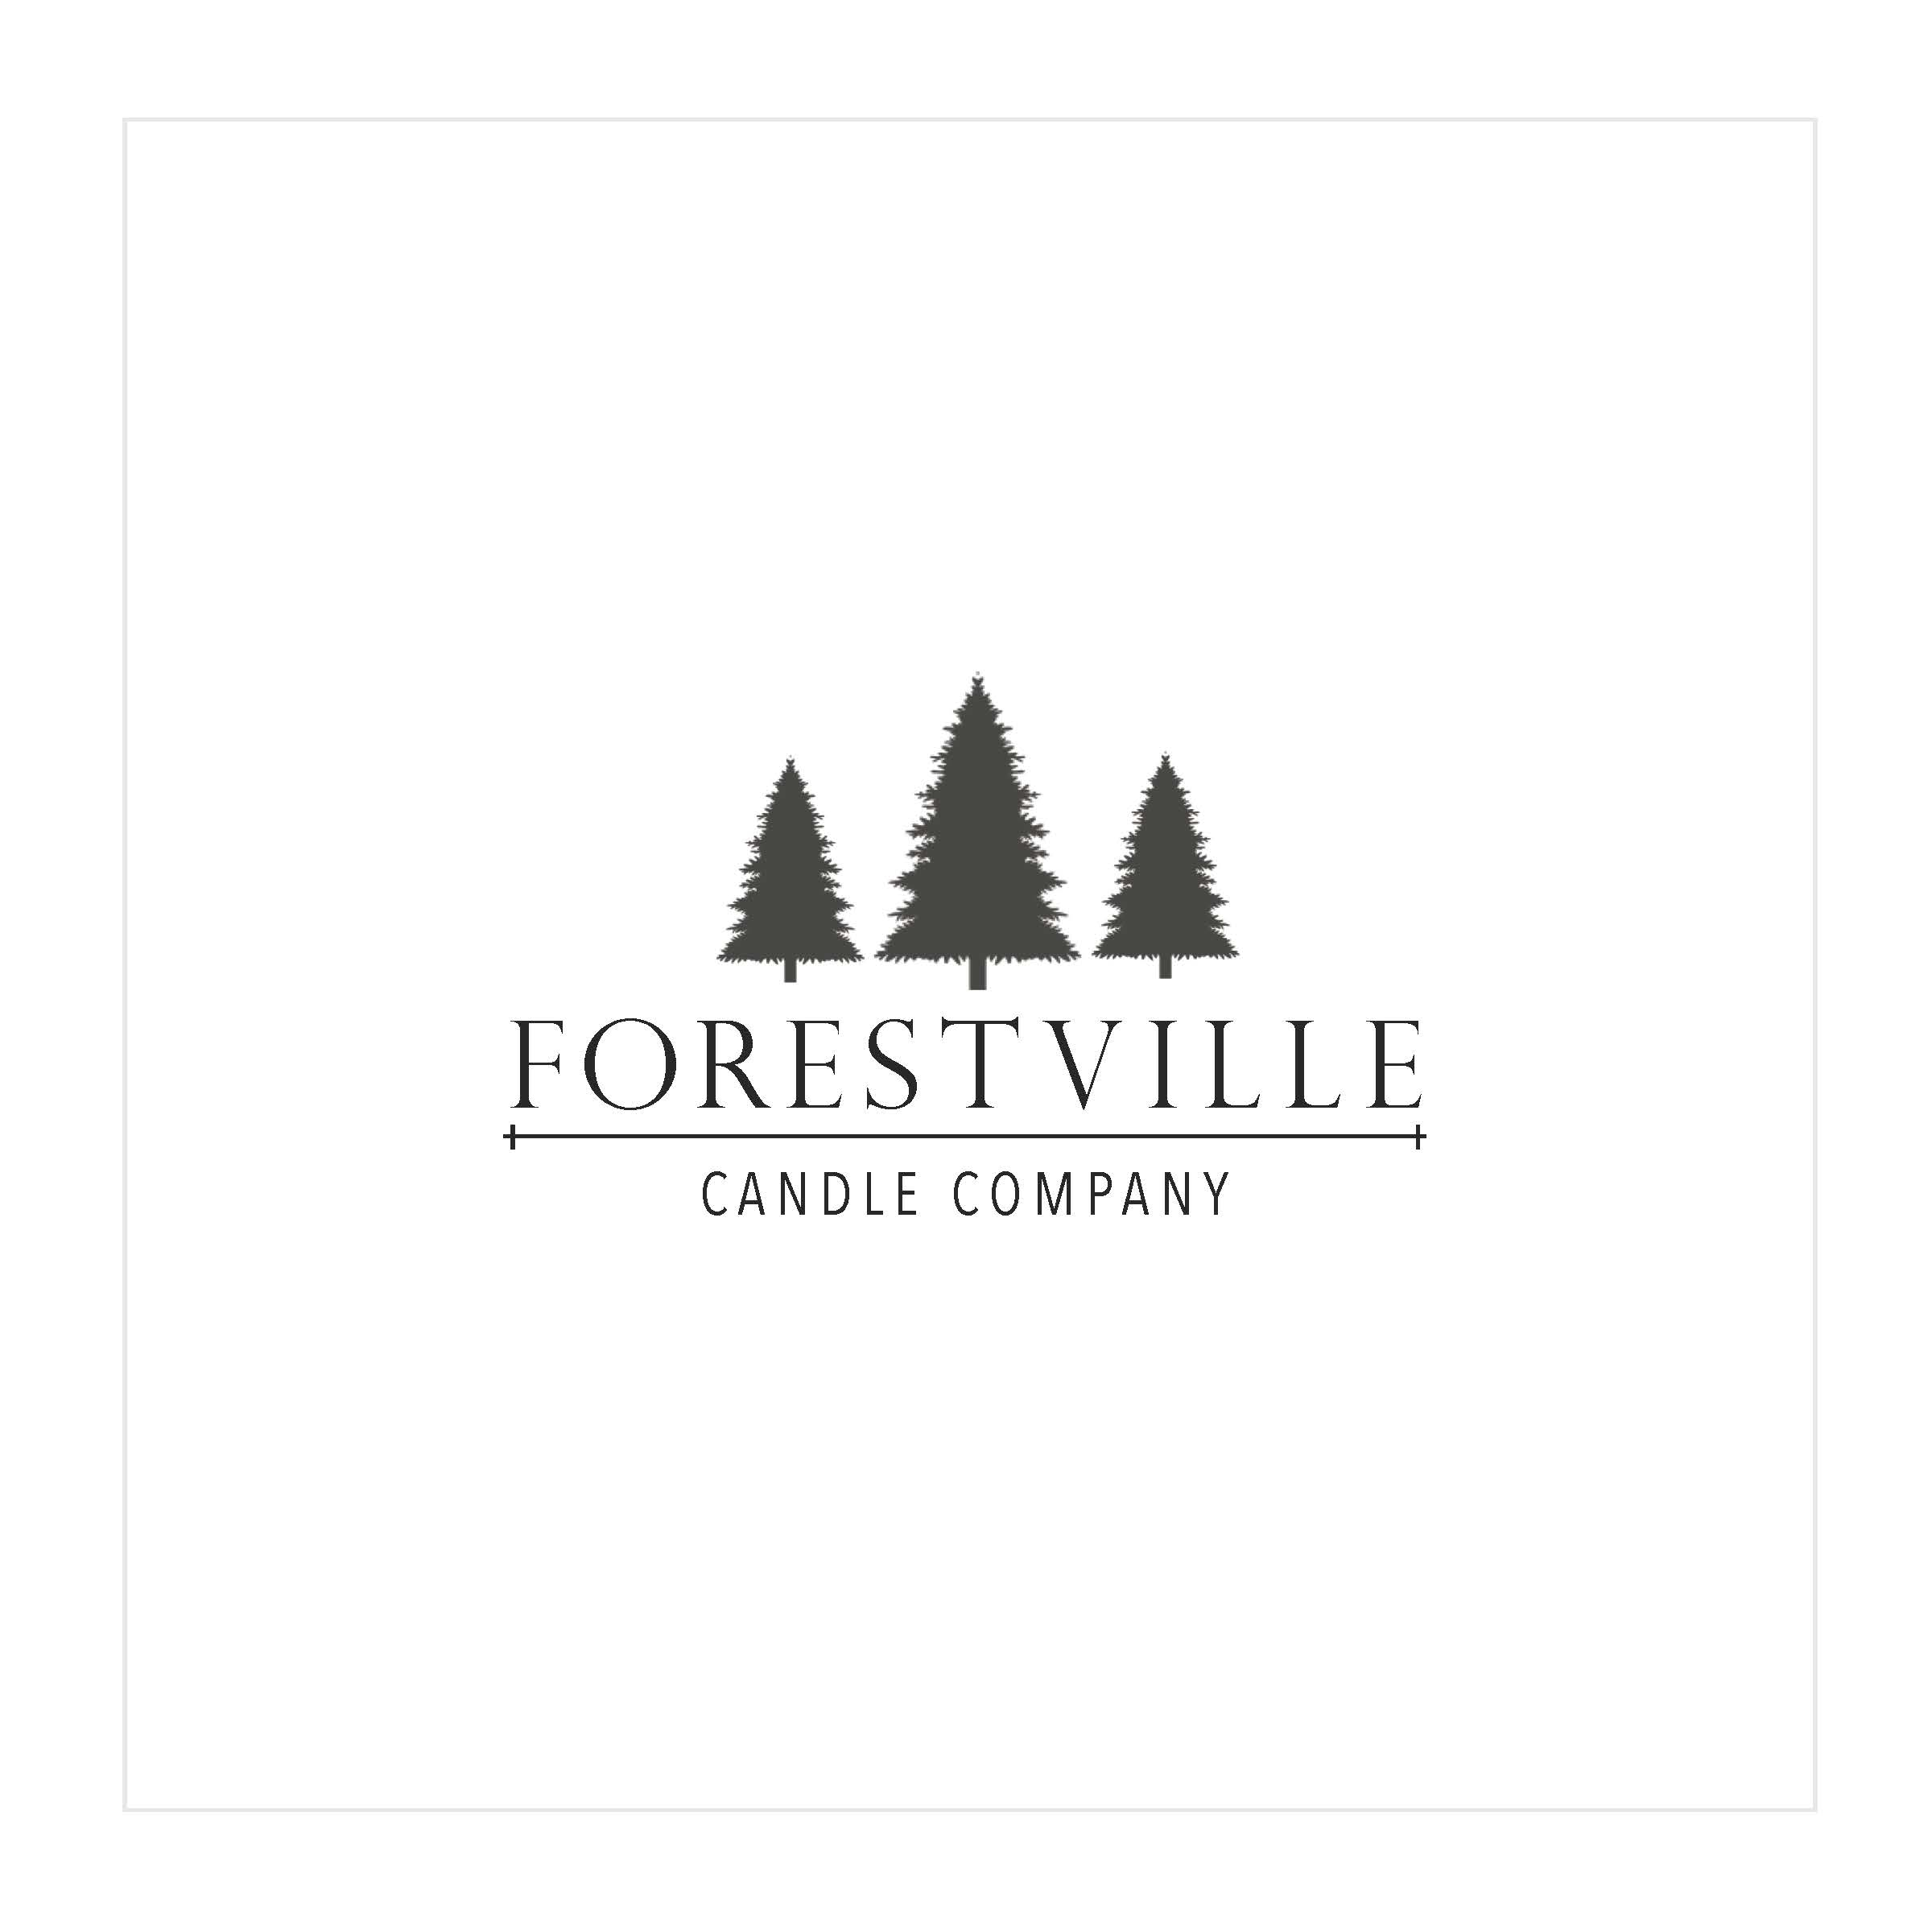 Forestville Candle Company Logo